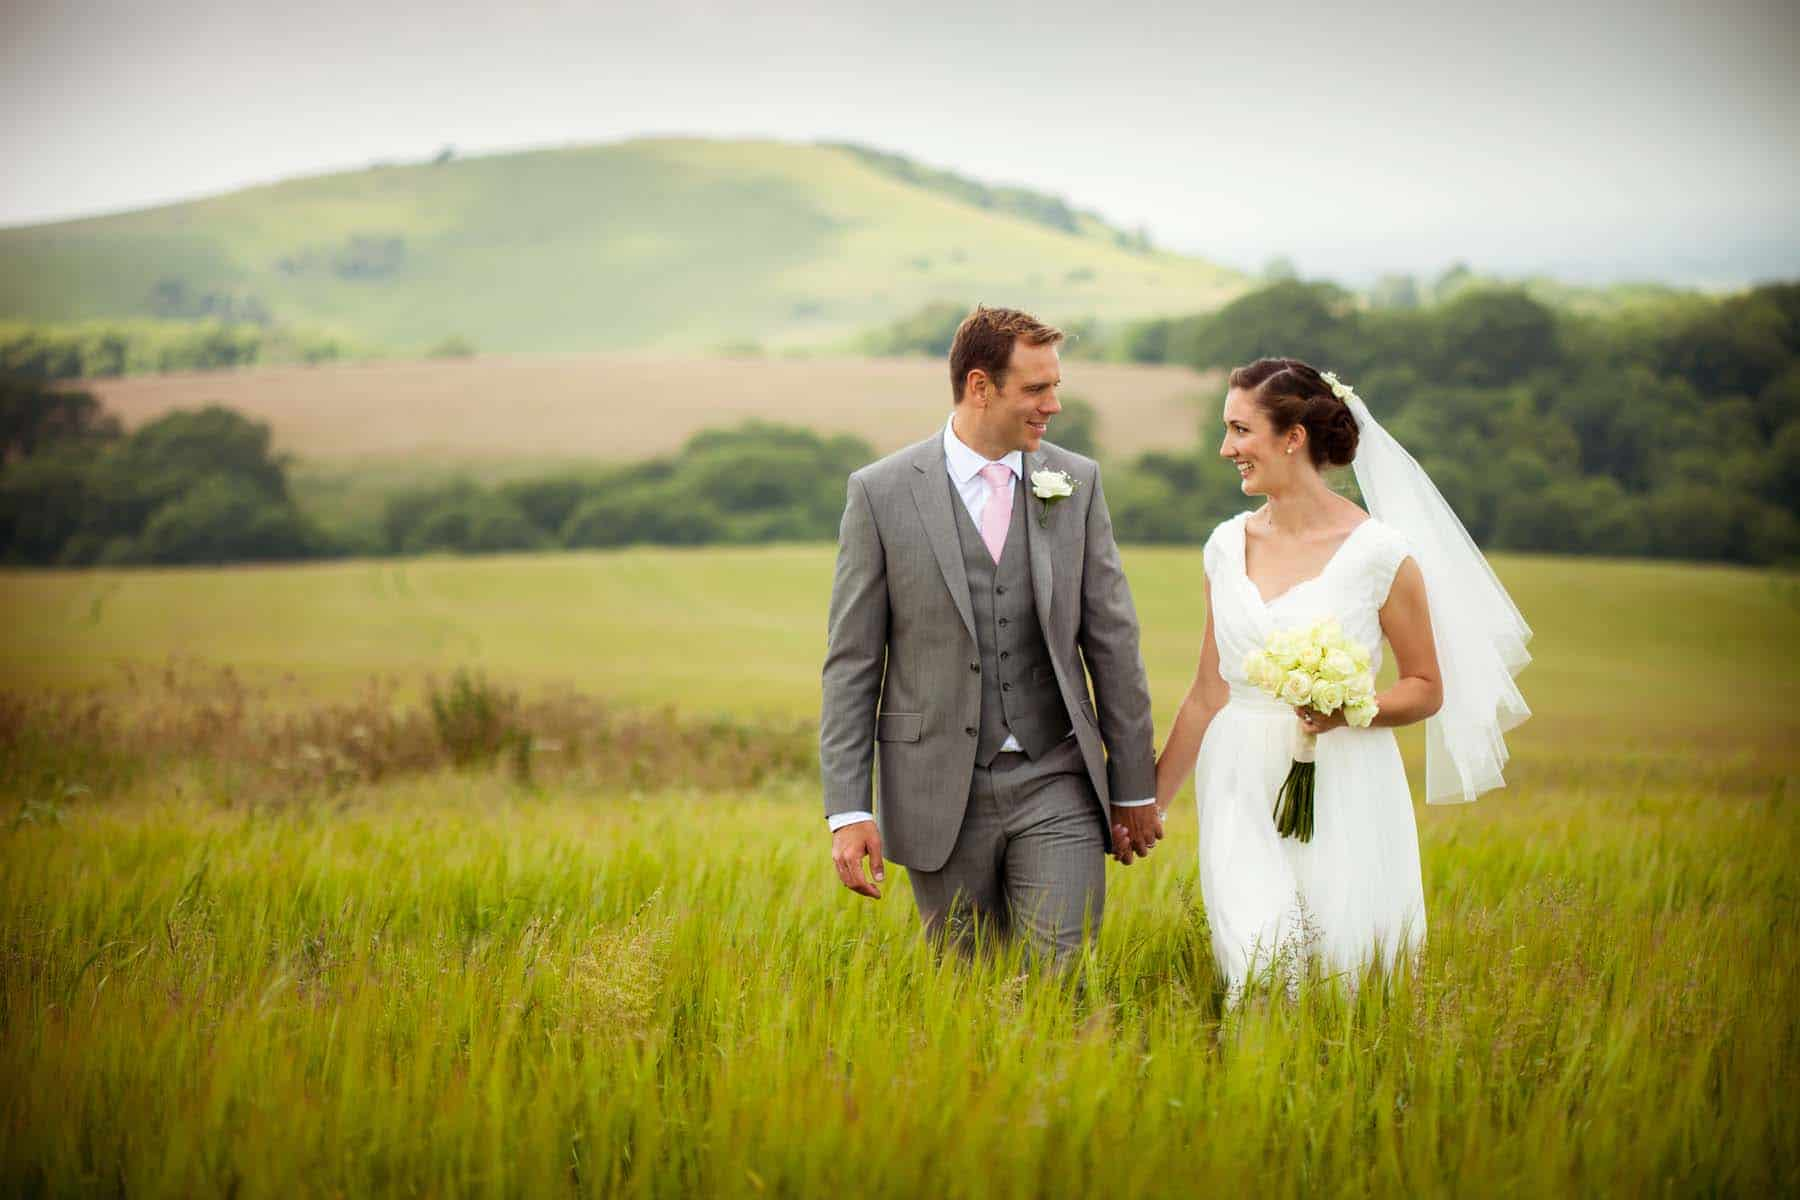 Wedding Gifts For Second Marriages Etiquette: Second Wedding Etiquette